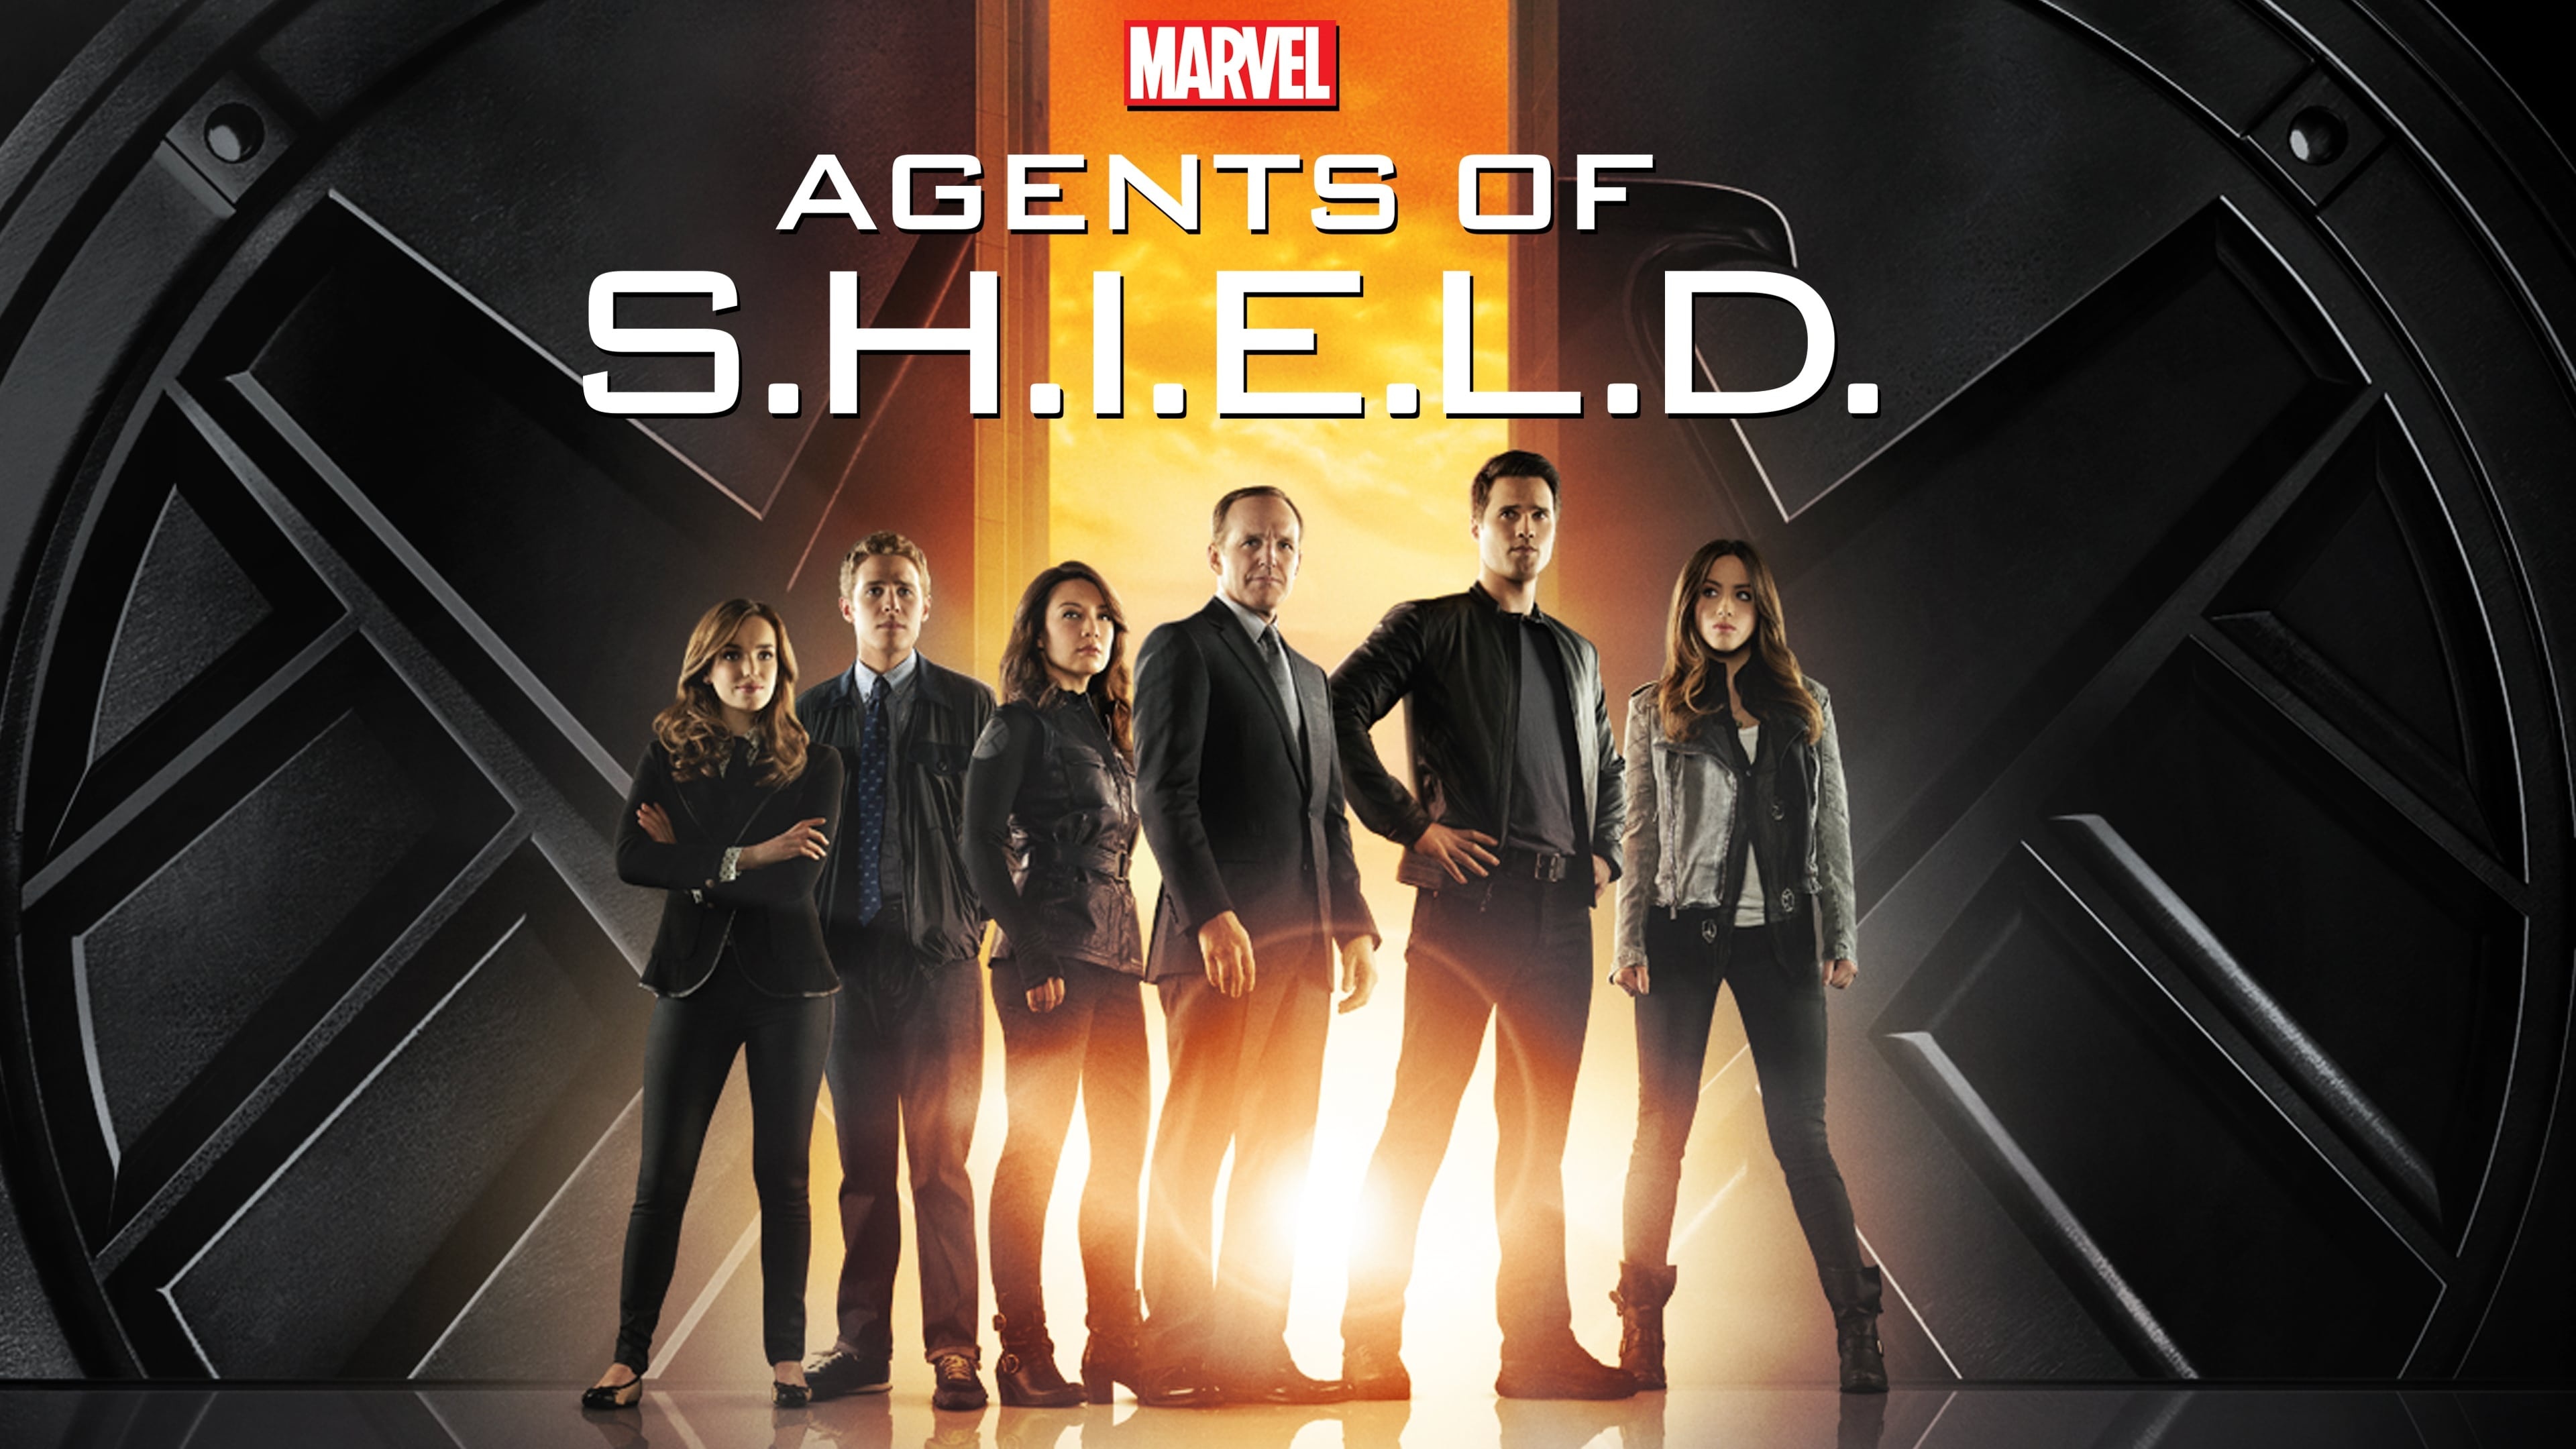 Marvel's Agents of S.H.I.E.L.D. - Season 0 Episode 4 : Double Agent: Searching For Secrets